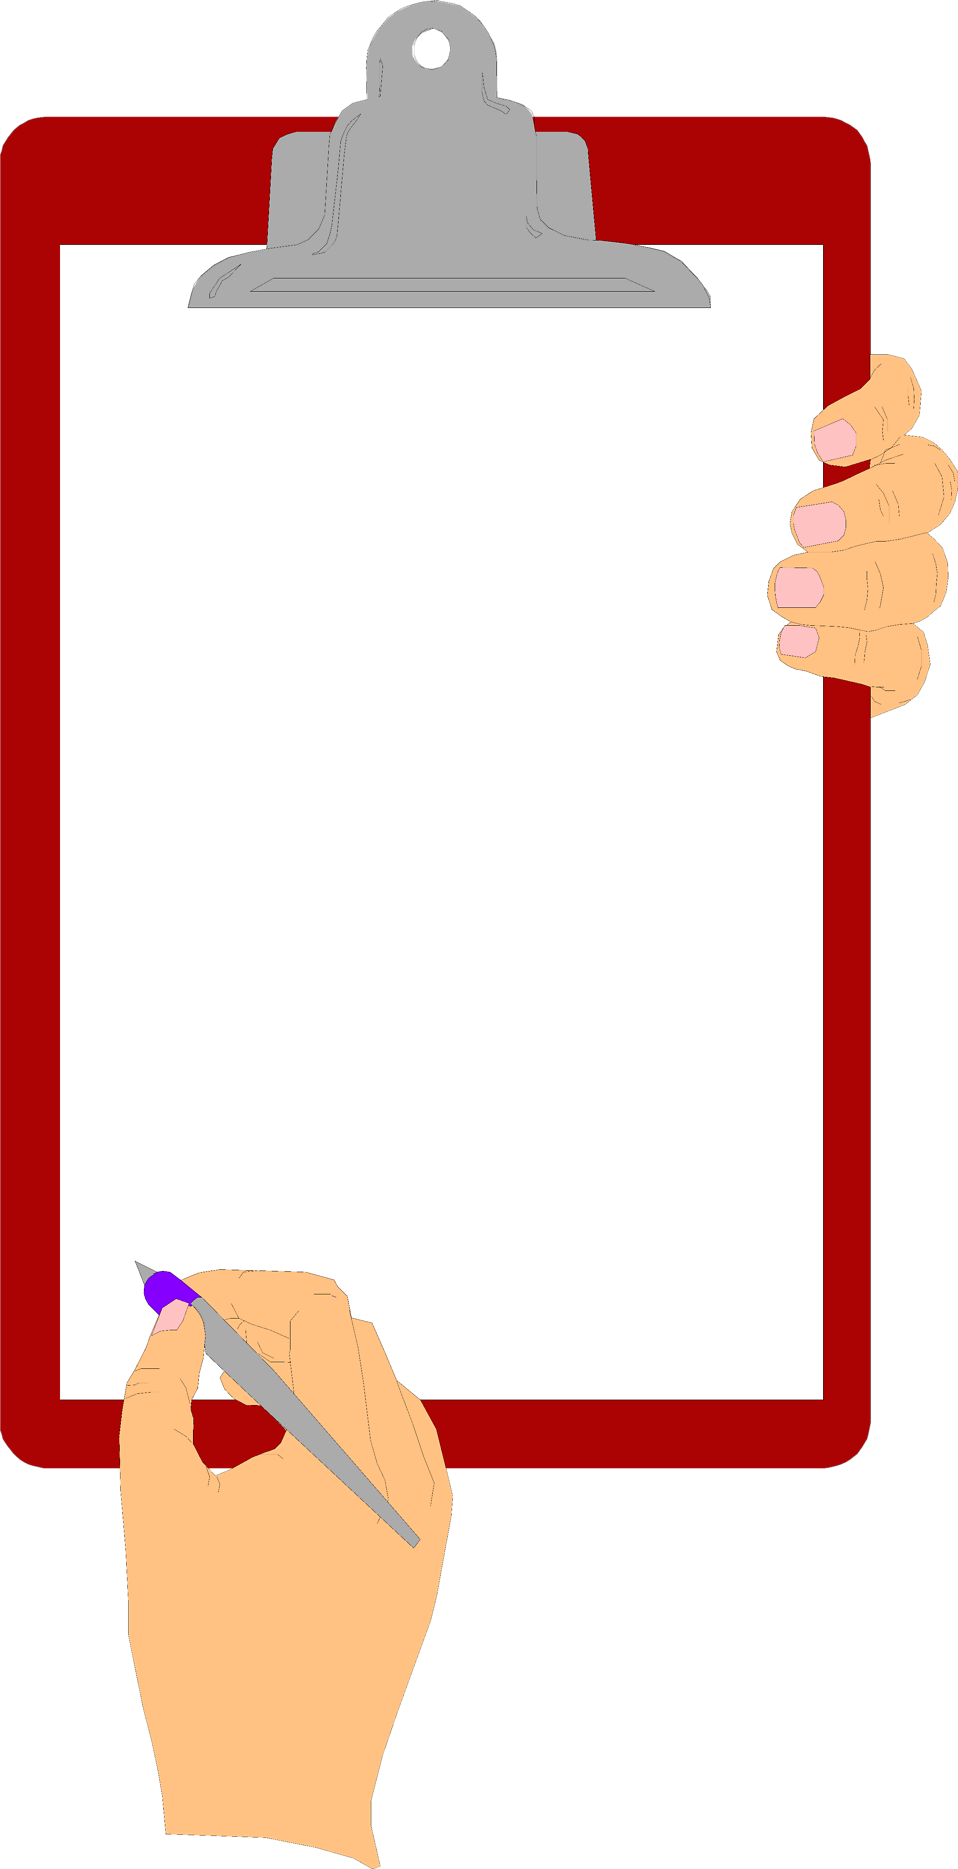 Free stock photo illustration. Clipboard png transparent clip royalty free download